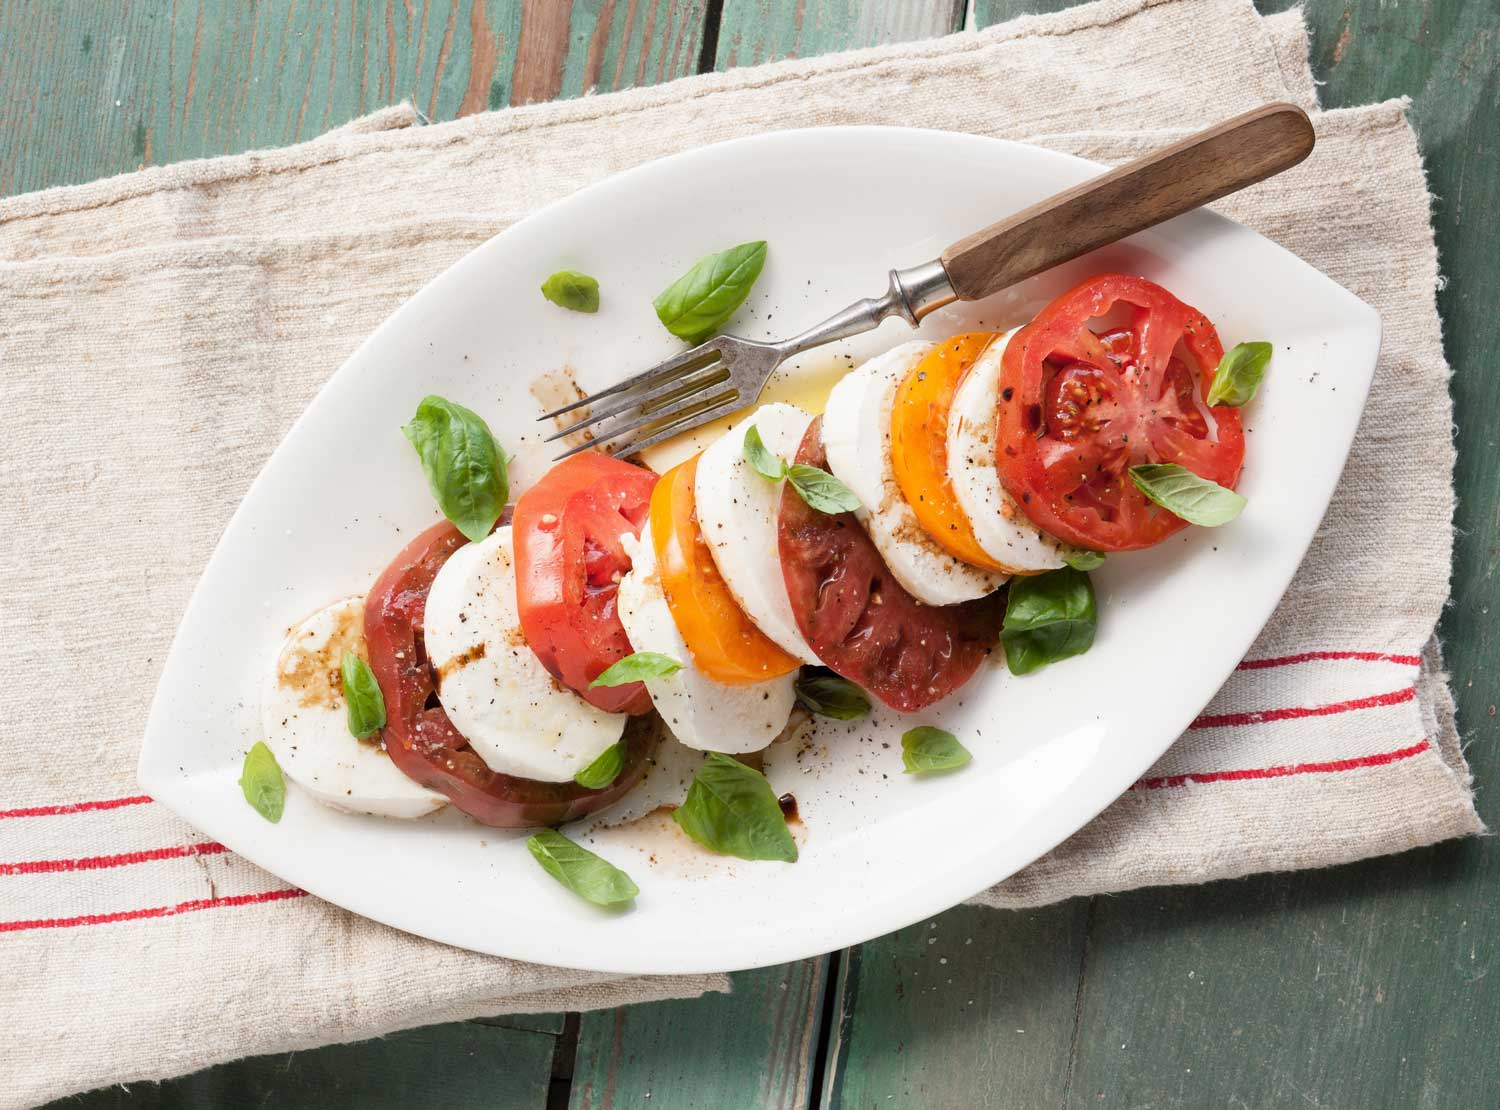 SALAD DAYS: Caprese perfect for summer evenings